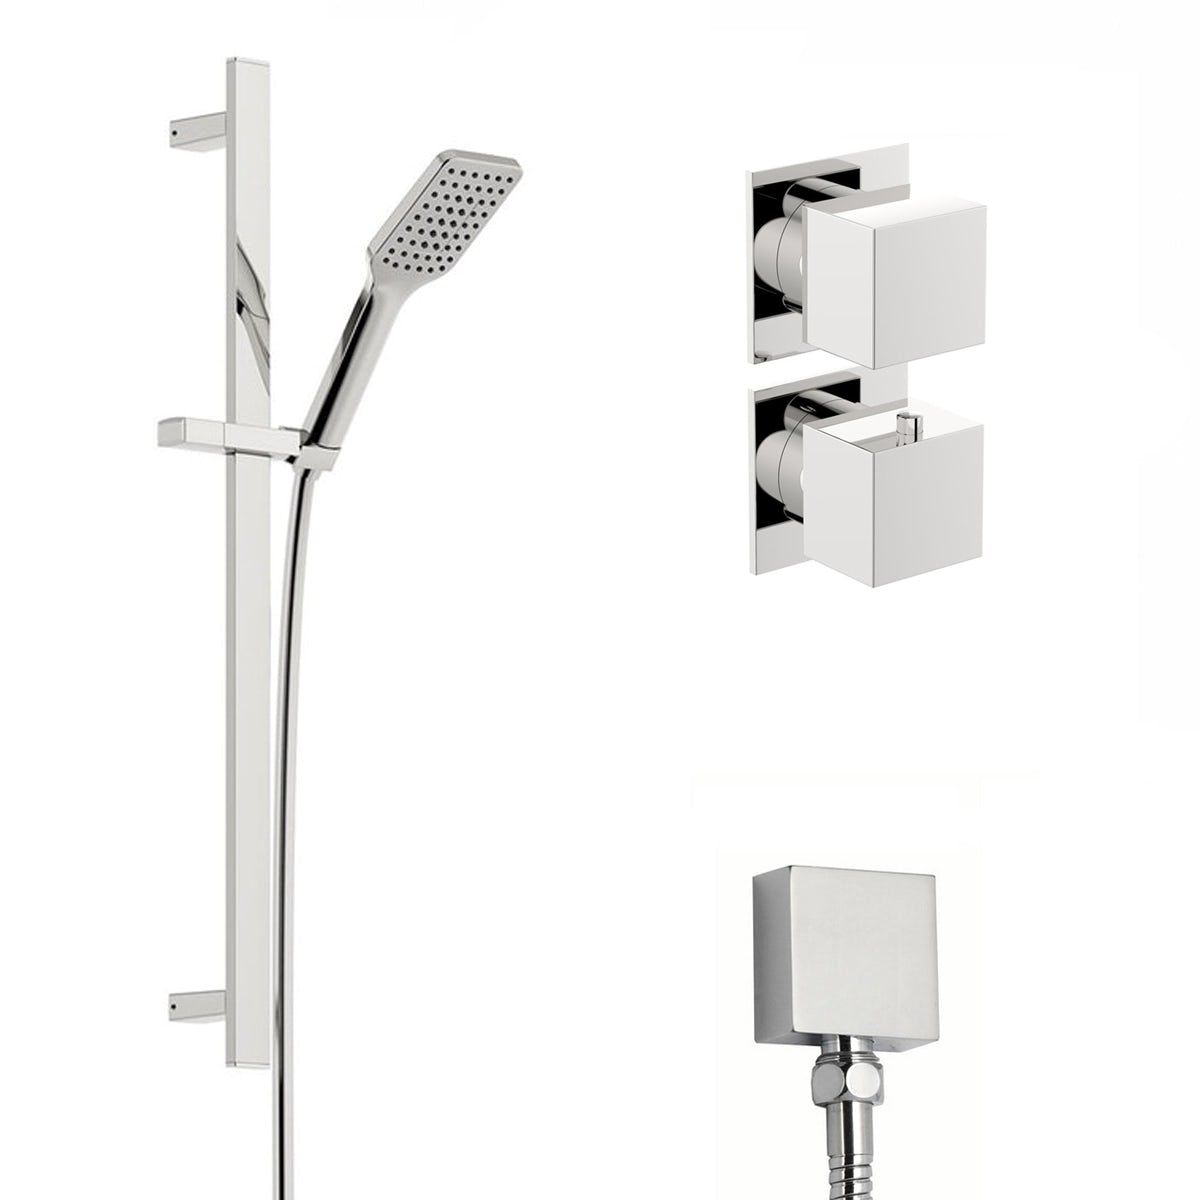 Mode Cooper thermostatic twin shower valve and slider rail set